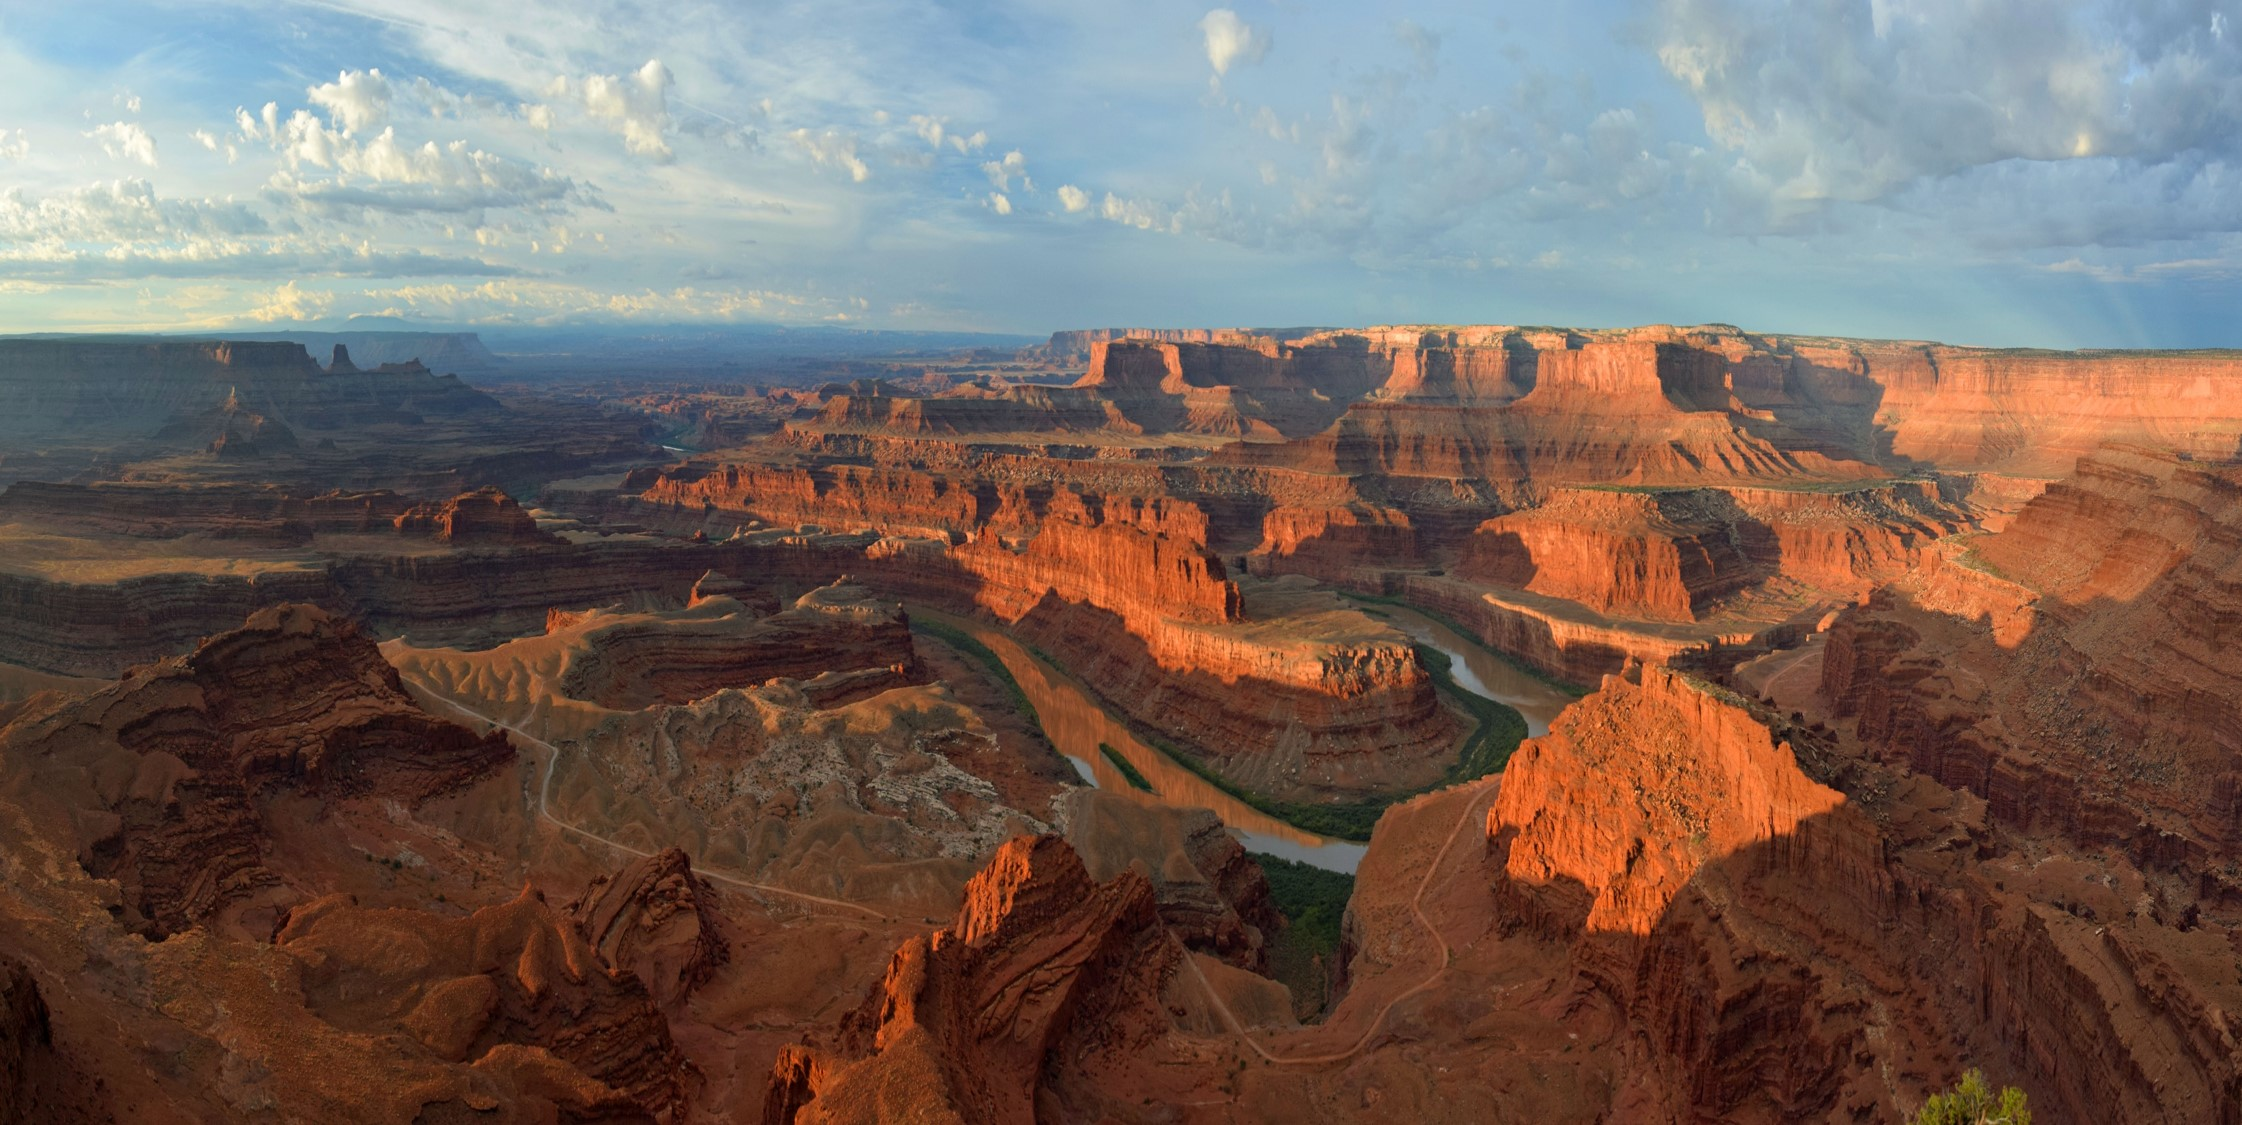 View from Dead Horse Point, National park in Utah.